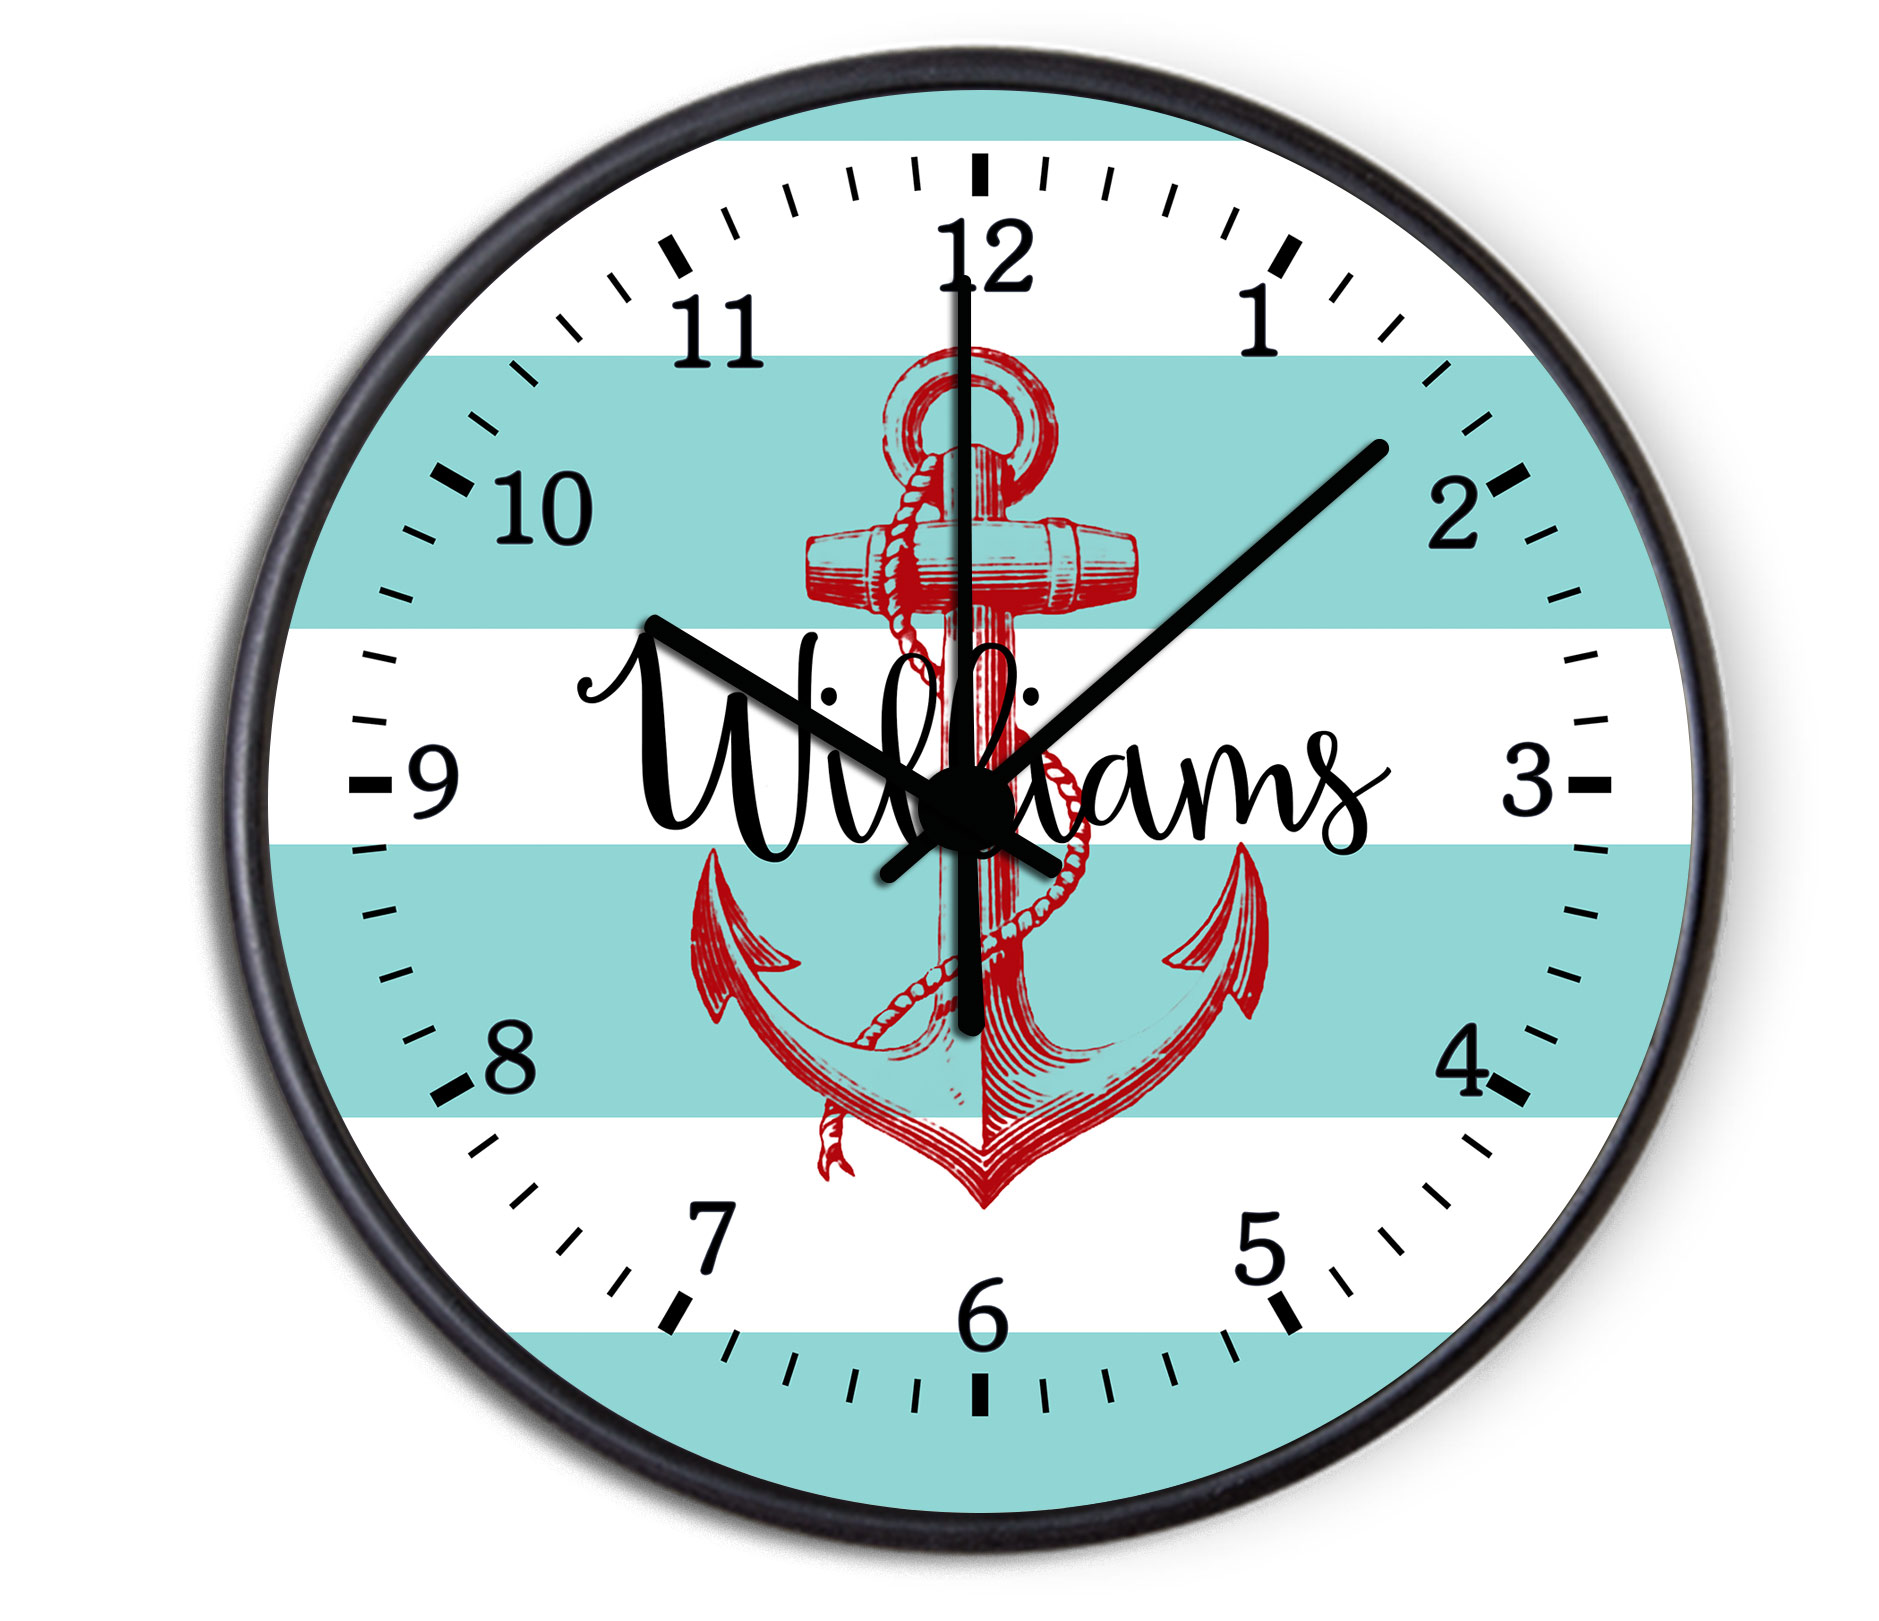 Custom nautical anchor personalized decorative kitchen wall clock nautical anchor personalized decorative wall clock boys or girls personalized clock amipublicfo Images